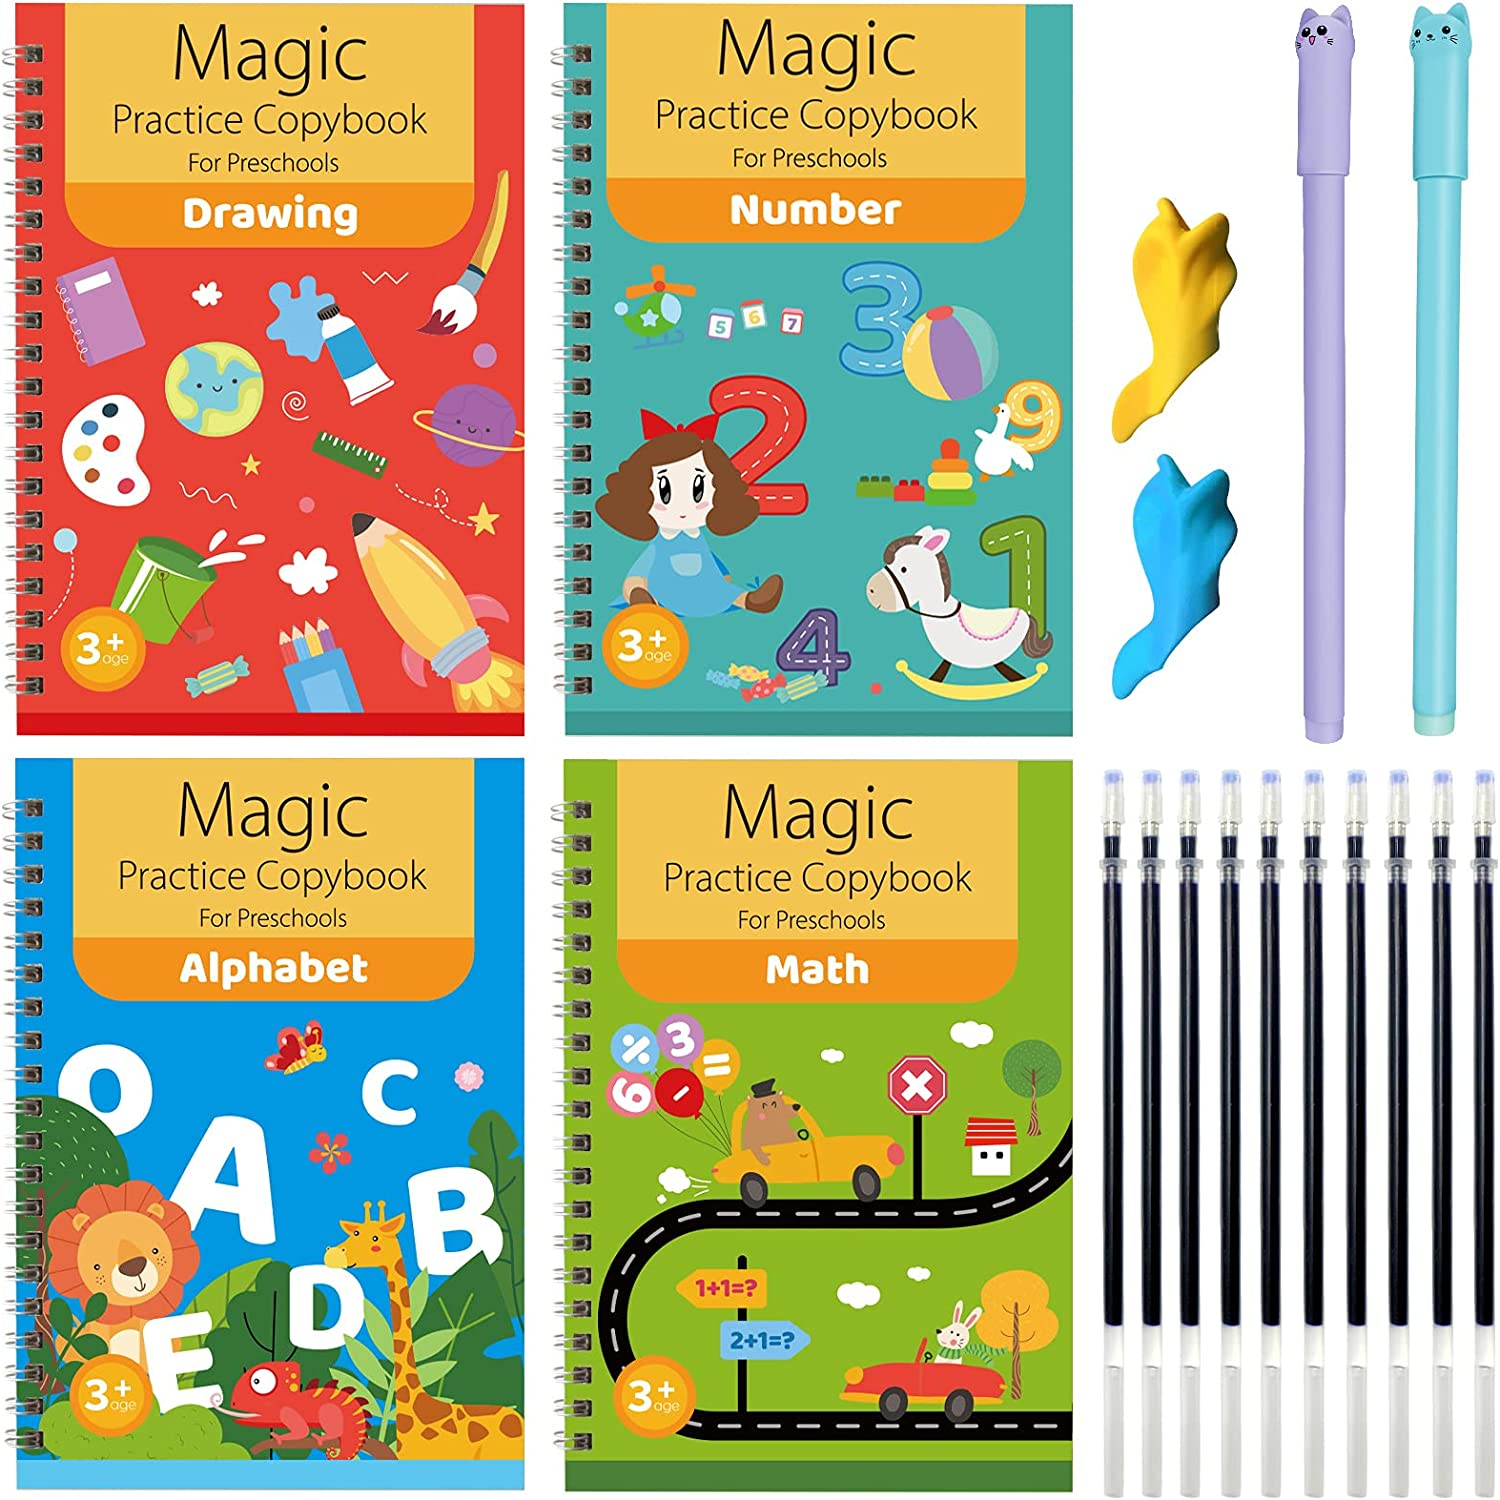 4 PCS Magic Ranking integrated 1st place Practice Copybook English Kids Magical 35% OFF Reusable for